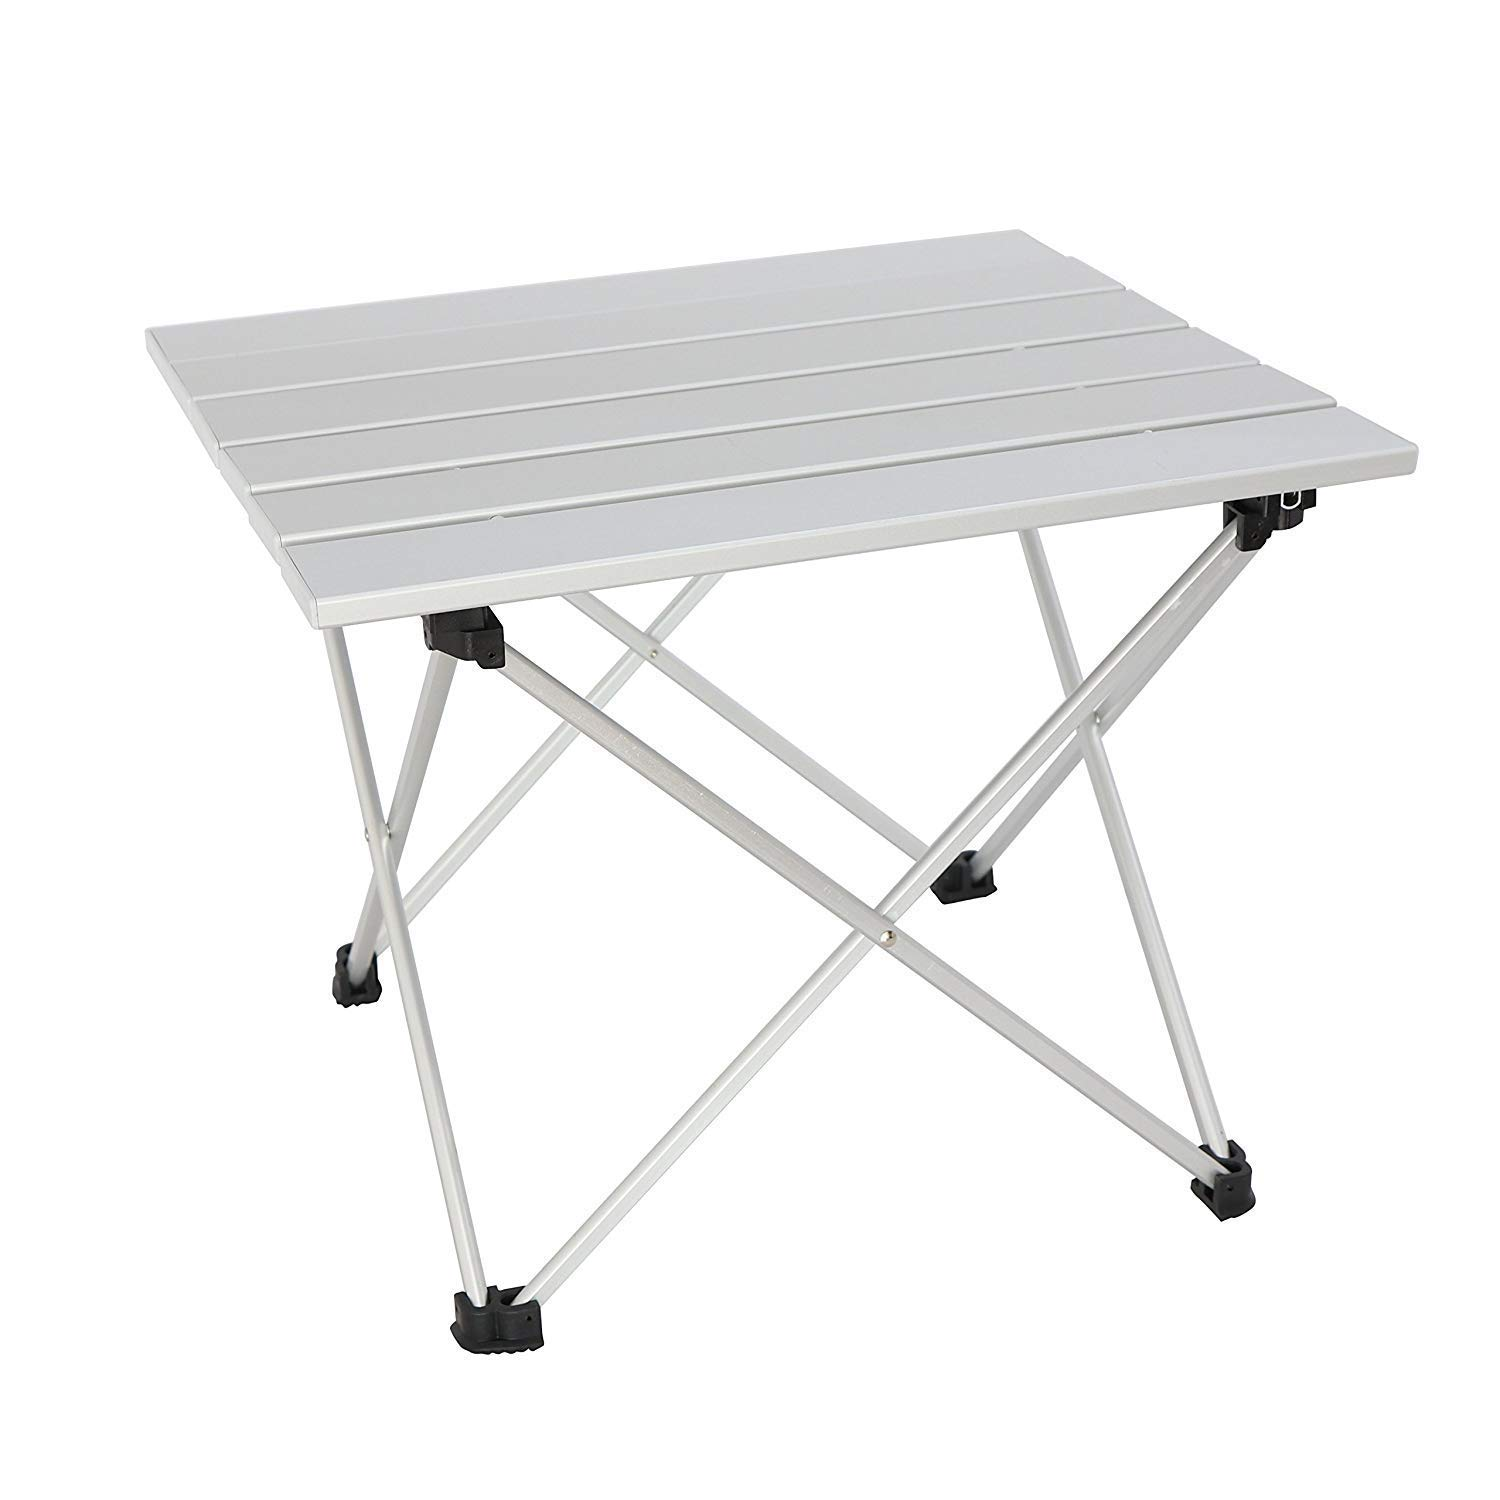 Sutekus Portable Outdoor Picnic Folding Table Table with Special Storage Bag Aluminum Alloy Camping Equipment (Silver) by Sutekus